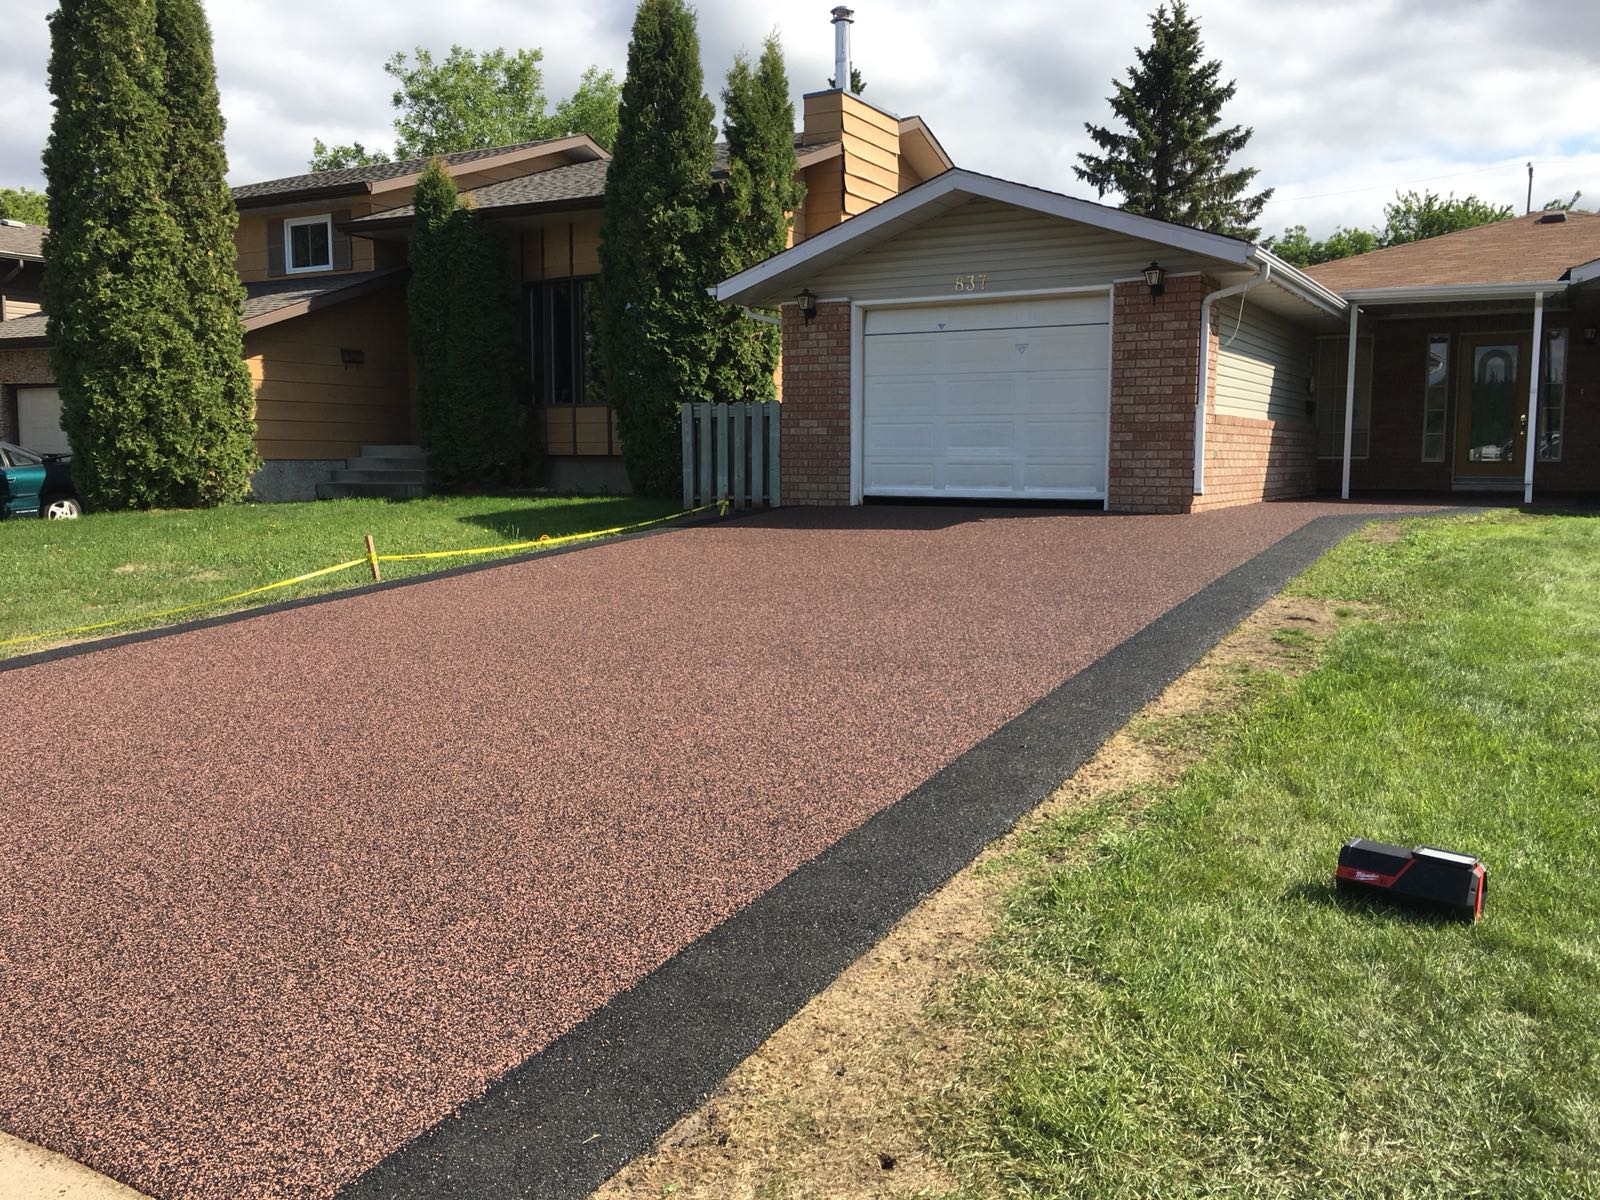 Installation is quick and convenient - When you install a new concrete driveway, there is a lengthy process involved. You have to demolish your old surface, haul it away, pour the new concrete and then wait days for it to dry. Since you can install rubber paving right over your old driveway you'll save both time and money. Plus, installation only takes one day and just 24 hours to fully cure, making your driveway, garage, deck or sidewalk fully usable in just two days.